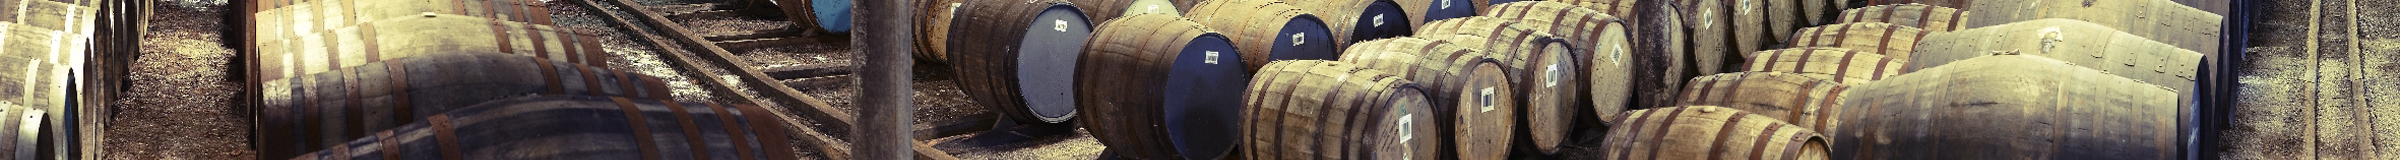 the-glenlivet_warehouse